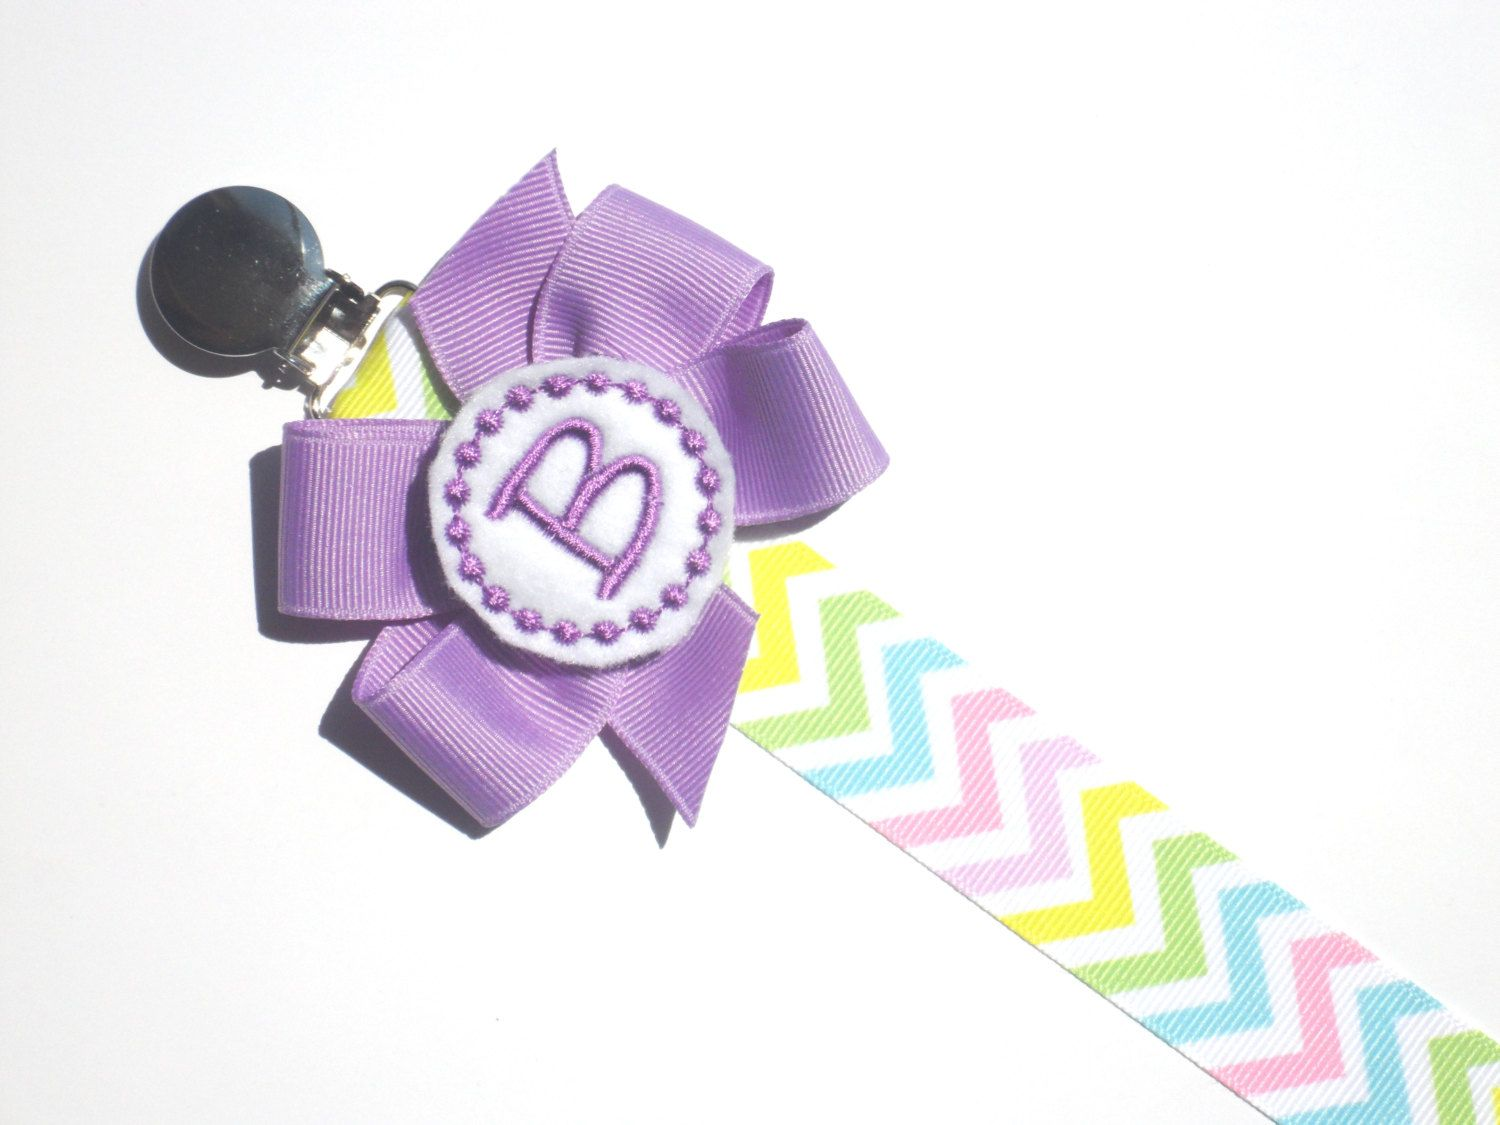 Personalized pacifier clip chevron monogram pacifier clip personalized pacifier clip chevron monogram pacifier clip personalized baby pacifier holder soothie nuk mam you pick twins baby gift negle Gallery